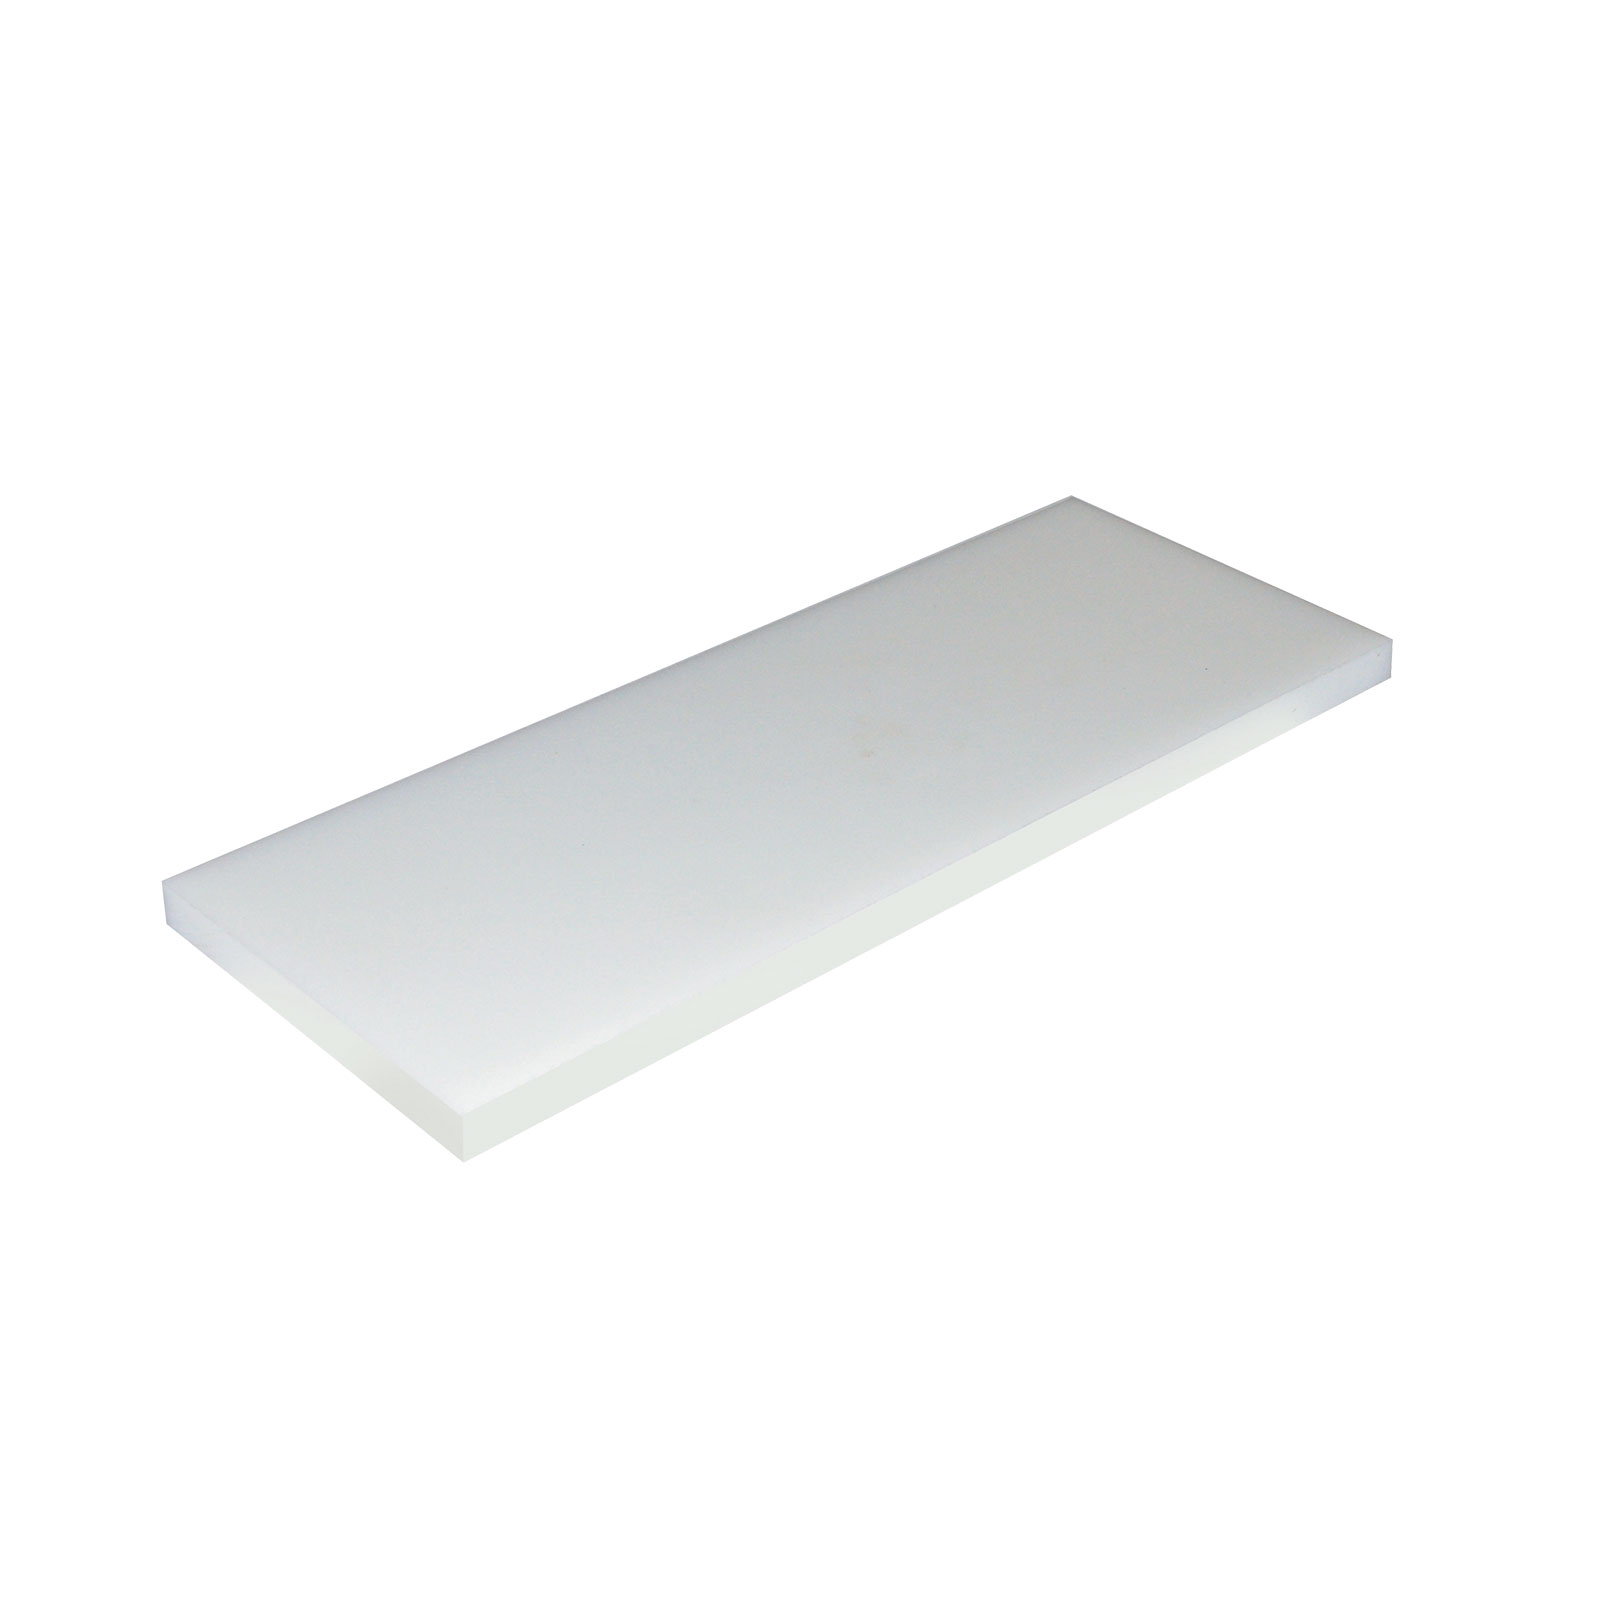 BK Resources HDPE-N-1-55121 cutting board, plastic